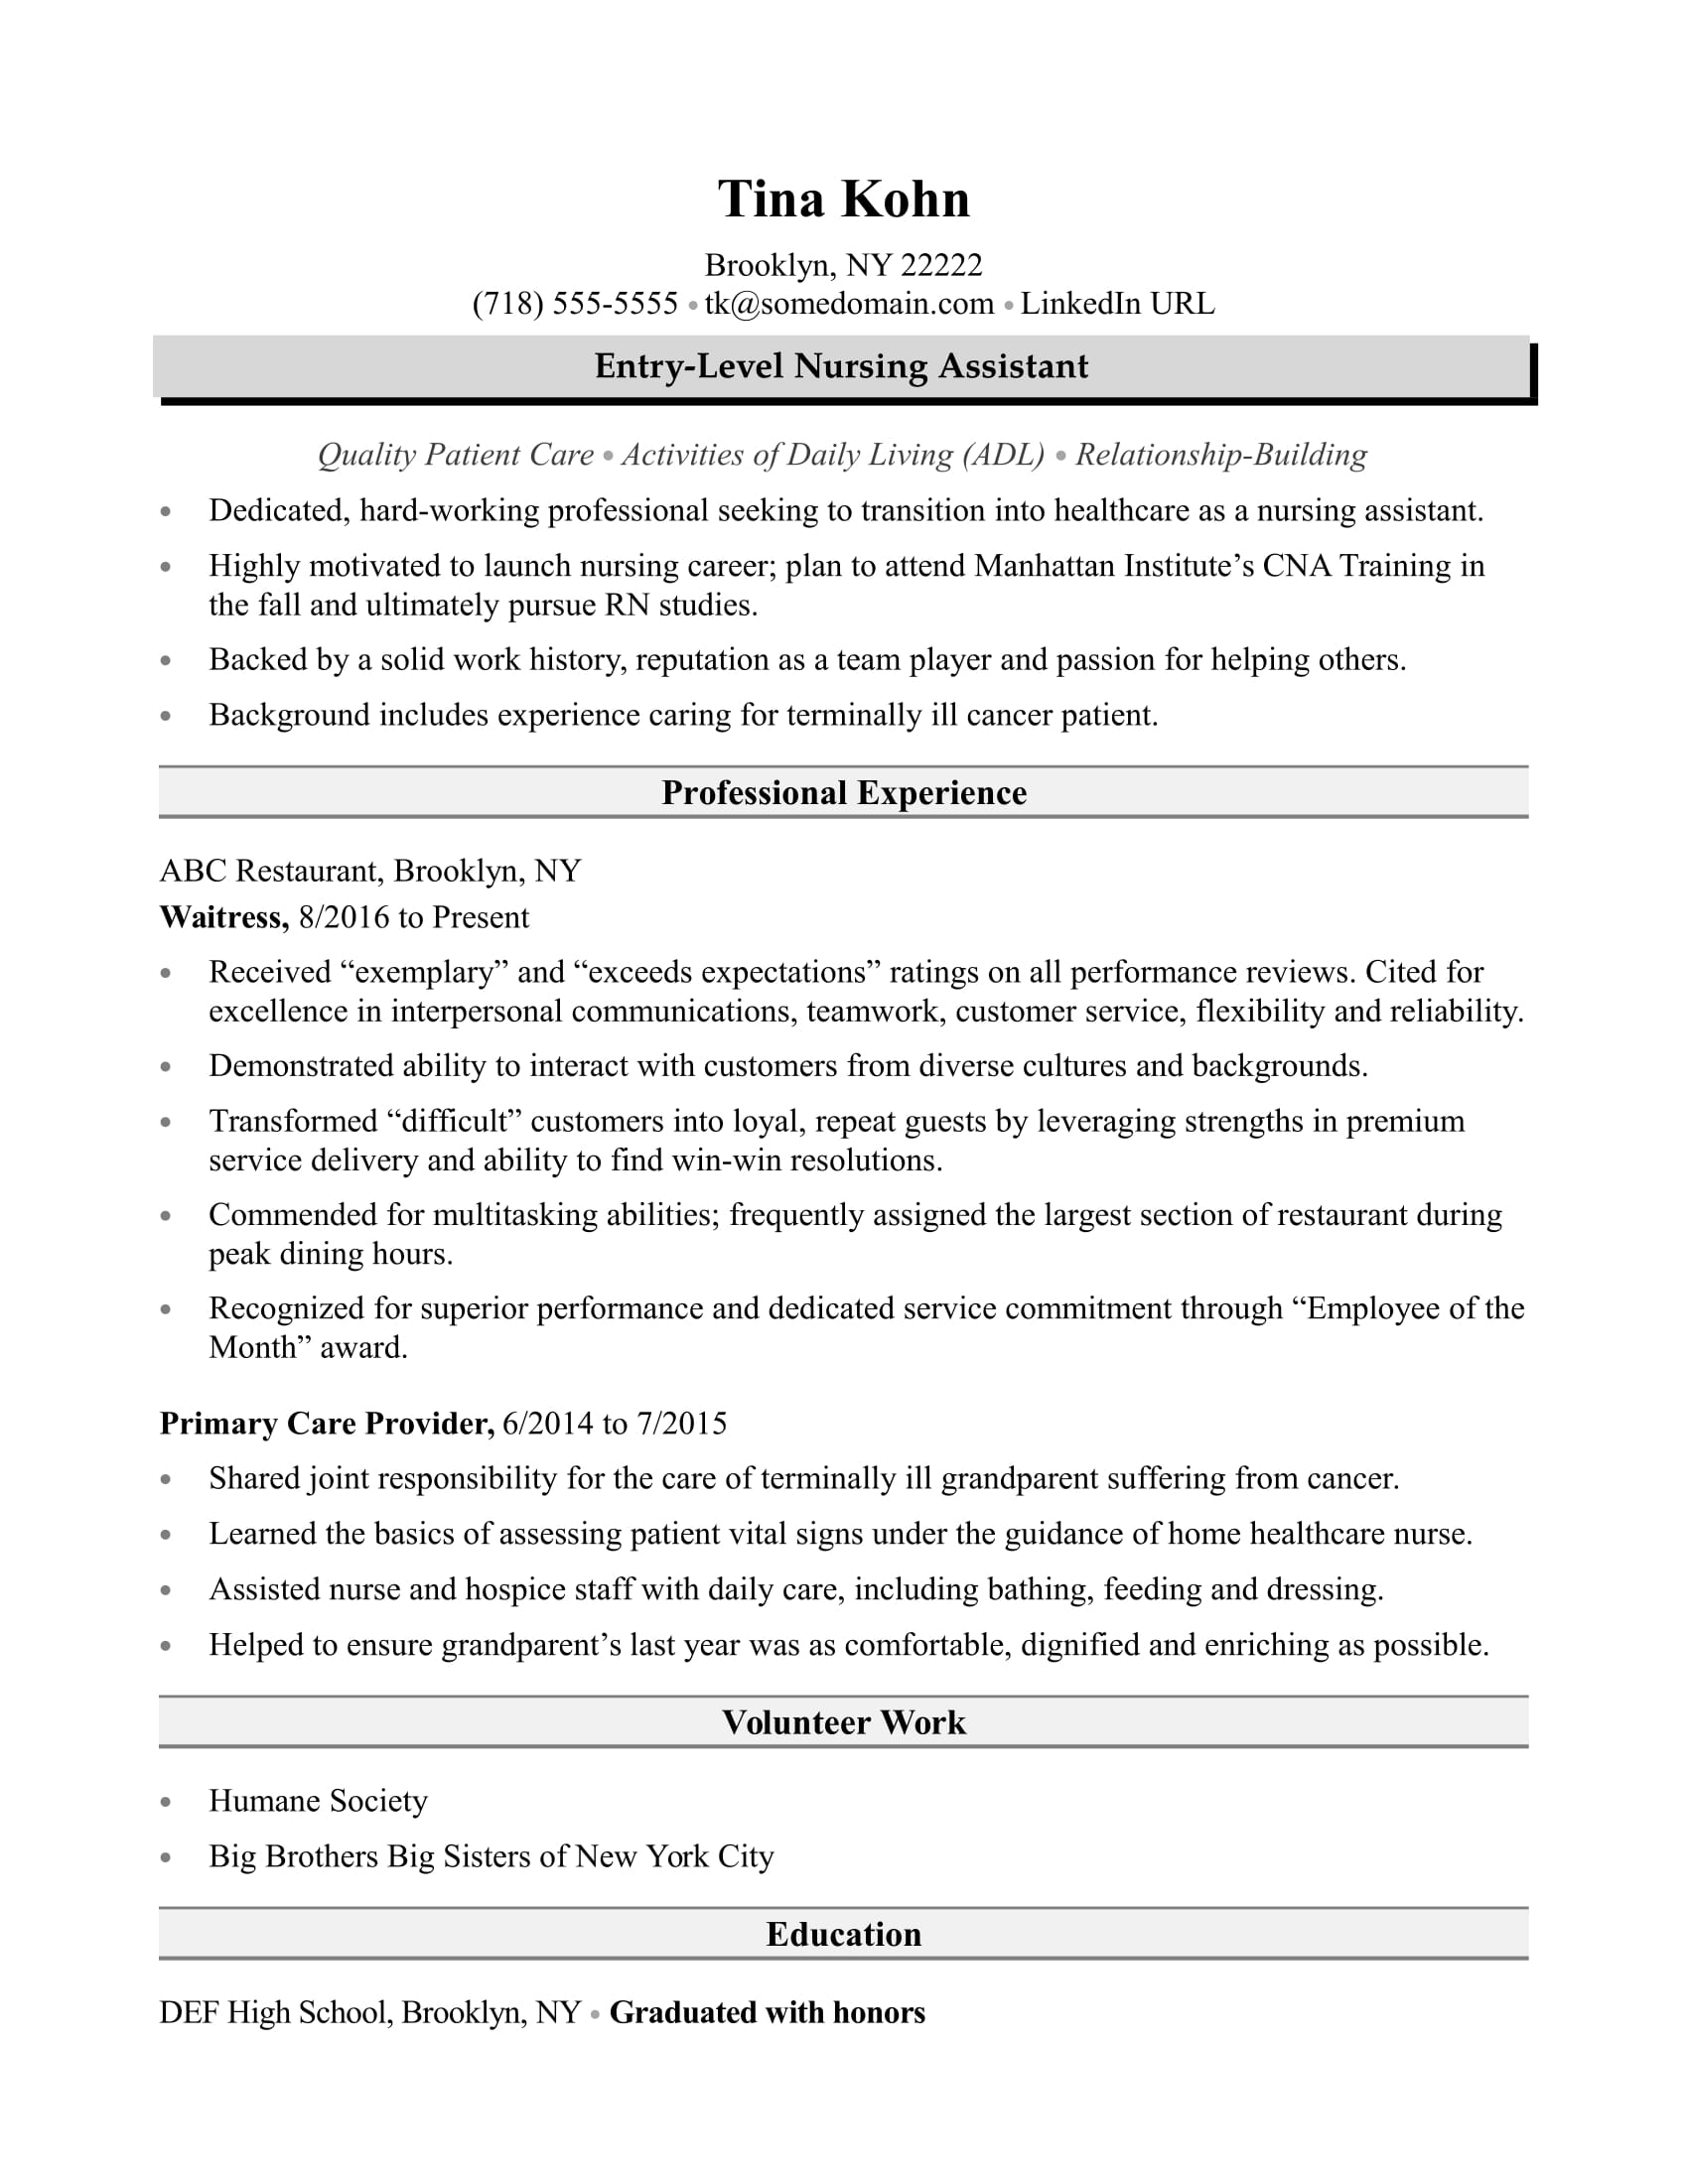 Nursing Assistant Resume Sample  Cna Job Resume